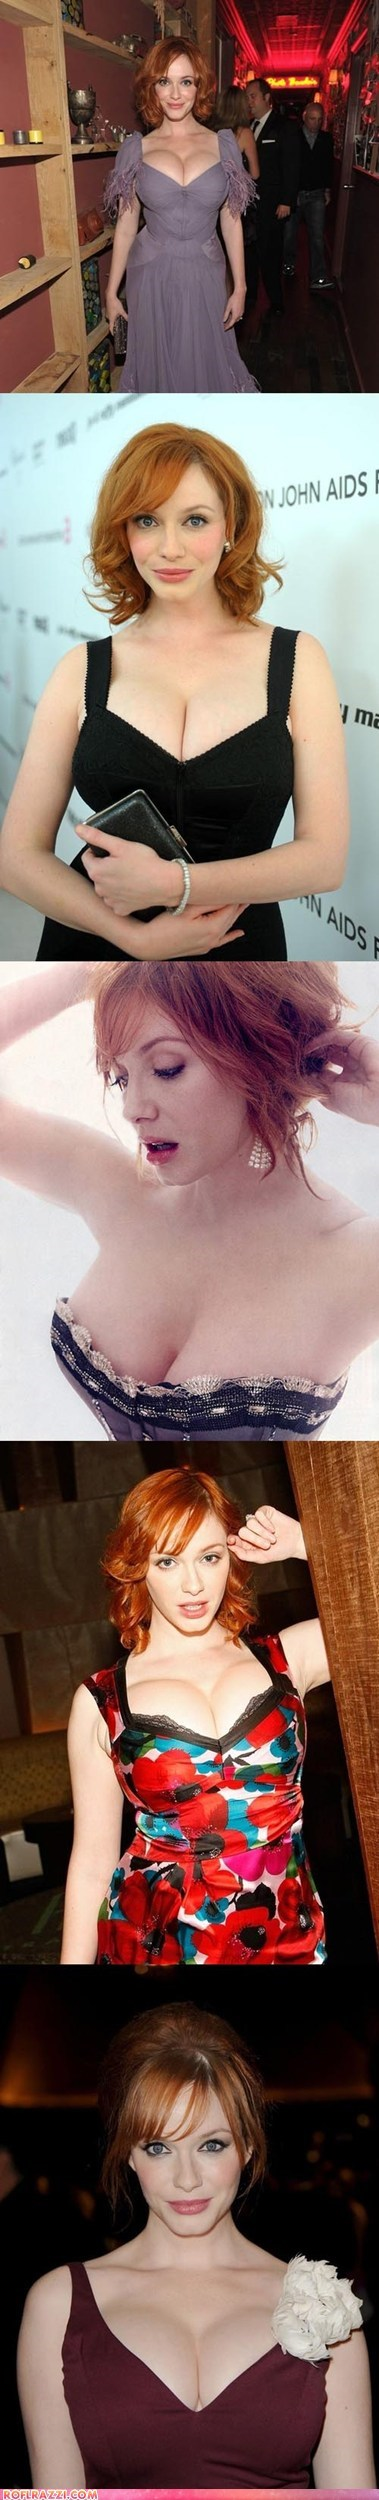 celeb Christina Hendricks dairy queen funny holiday sexy - 6049605120